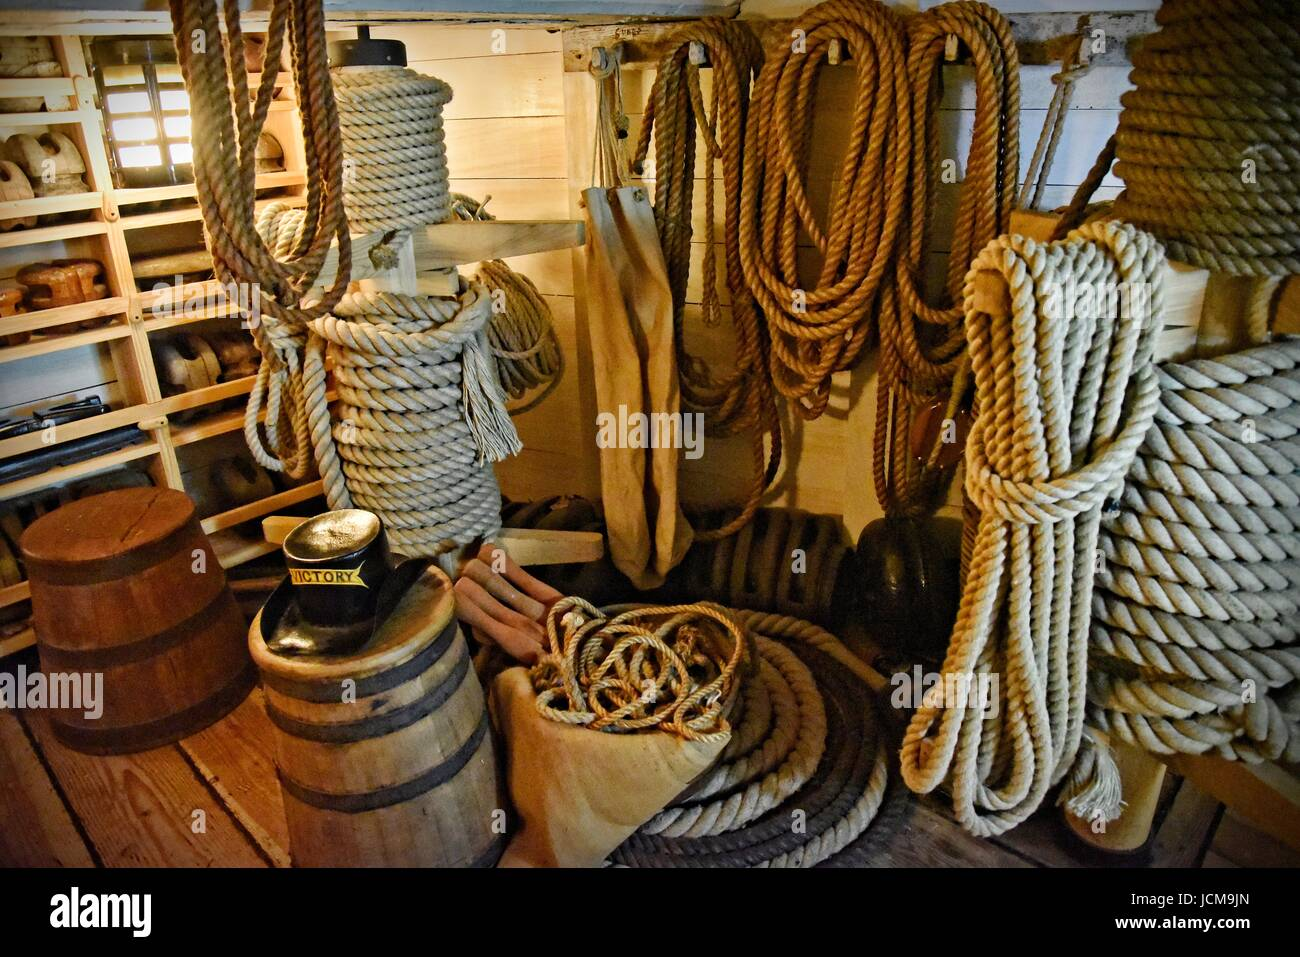 HMS Victory 104-gun first-rate ship of the line of the Royal Navy launched 1765. Nelson's flagship, Trafalgar 1805. Stock Photo